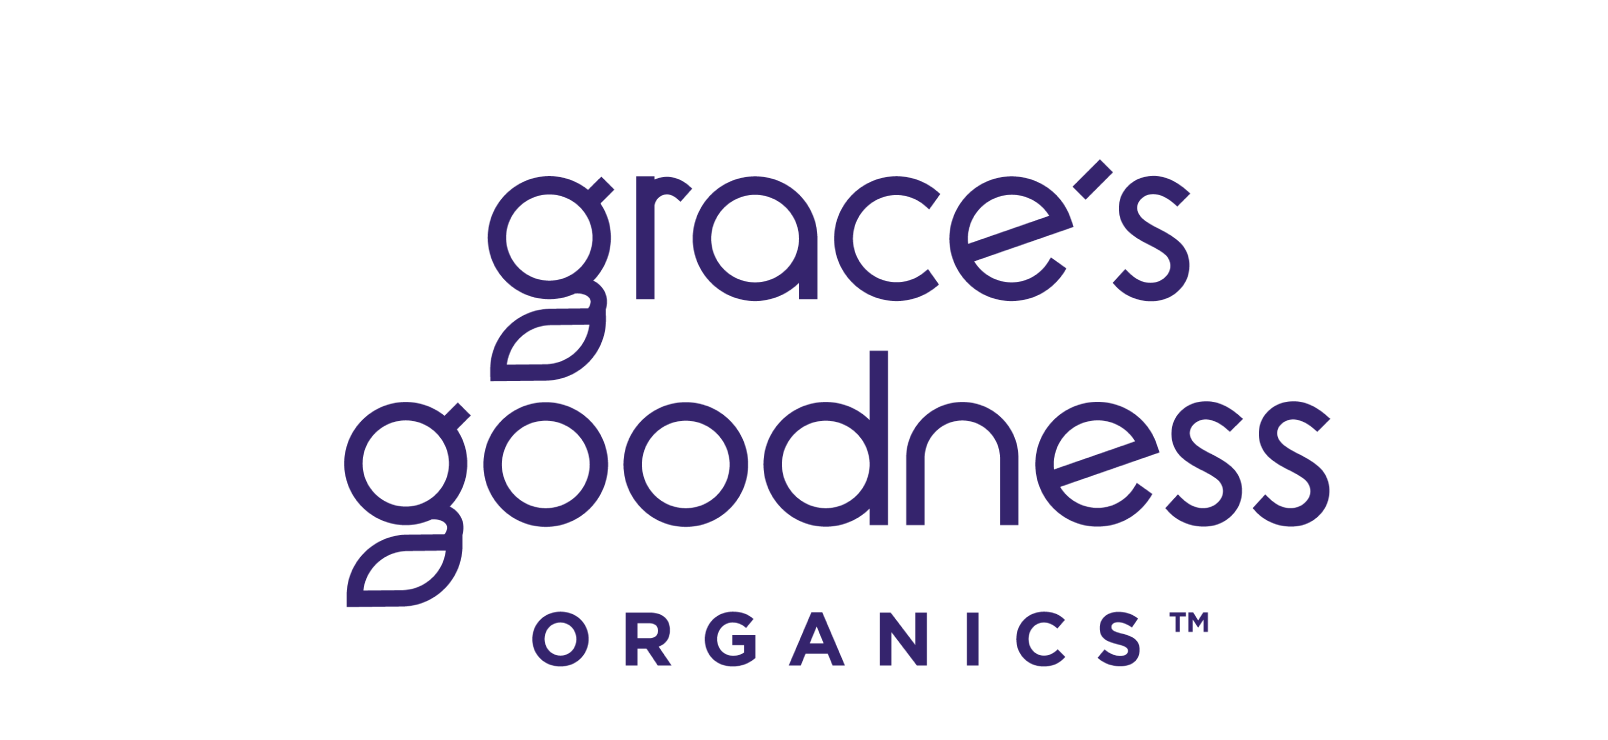 Grace's Goodness Organics